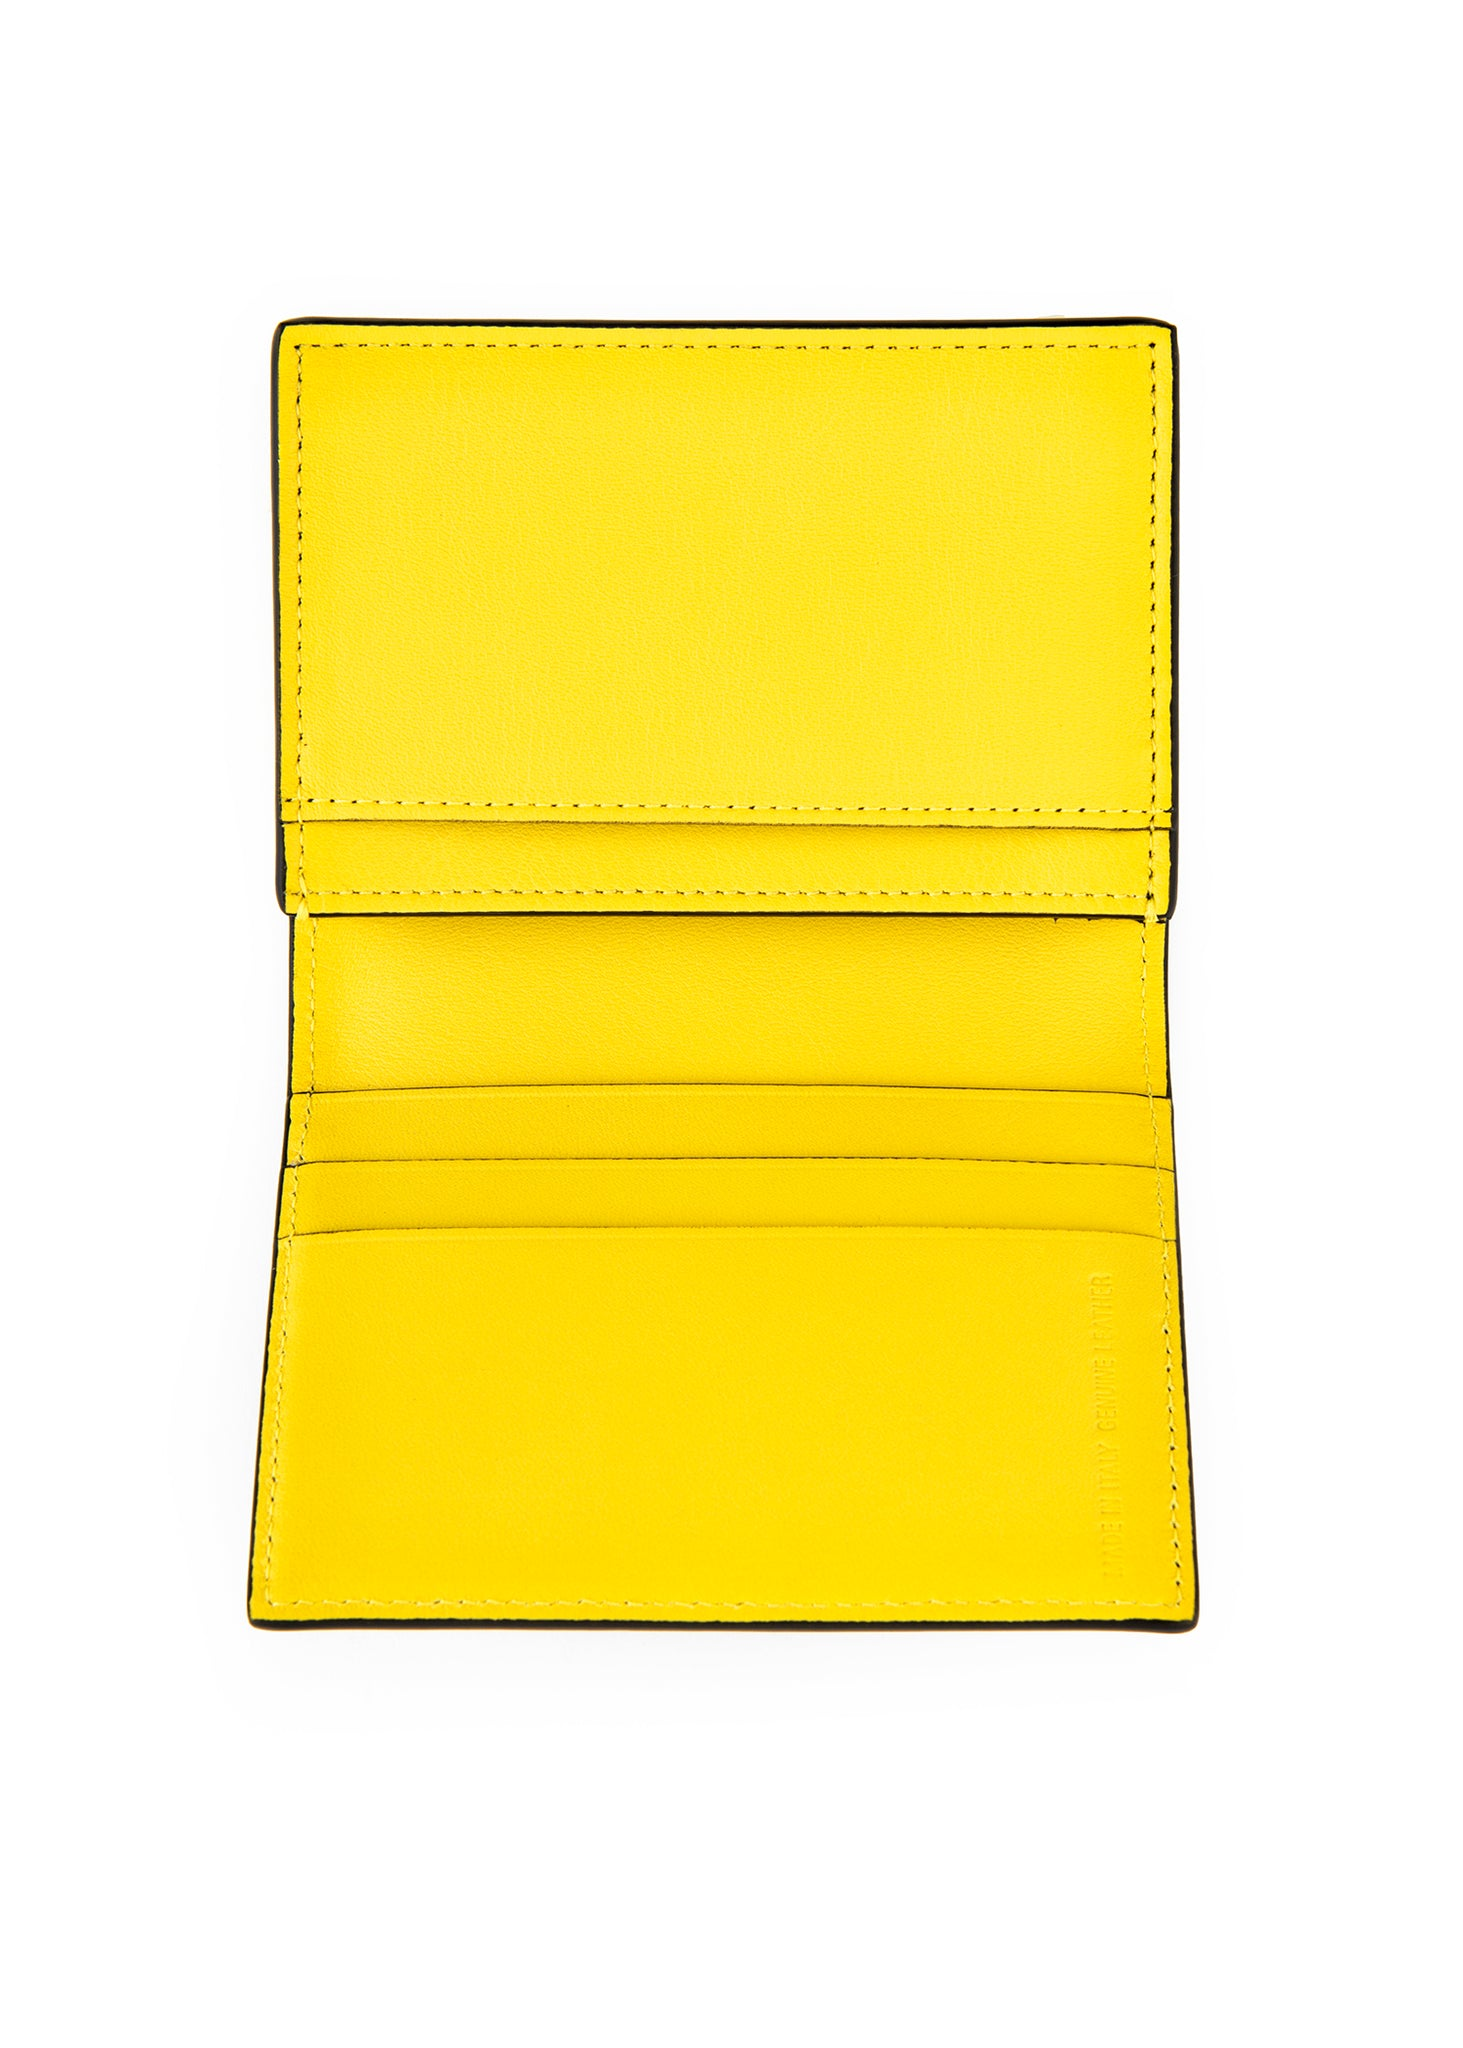 Porte-cartes noir et jaune|Black and yellow cardholder